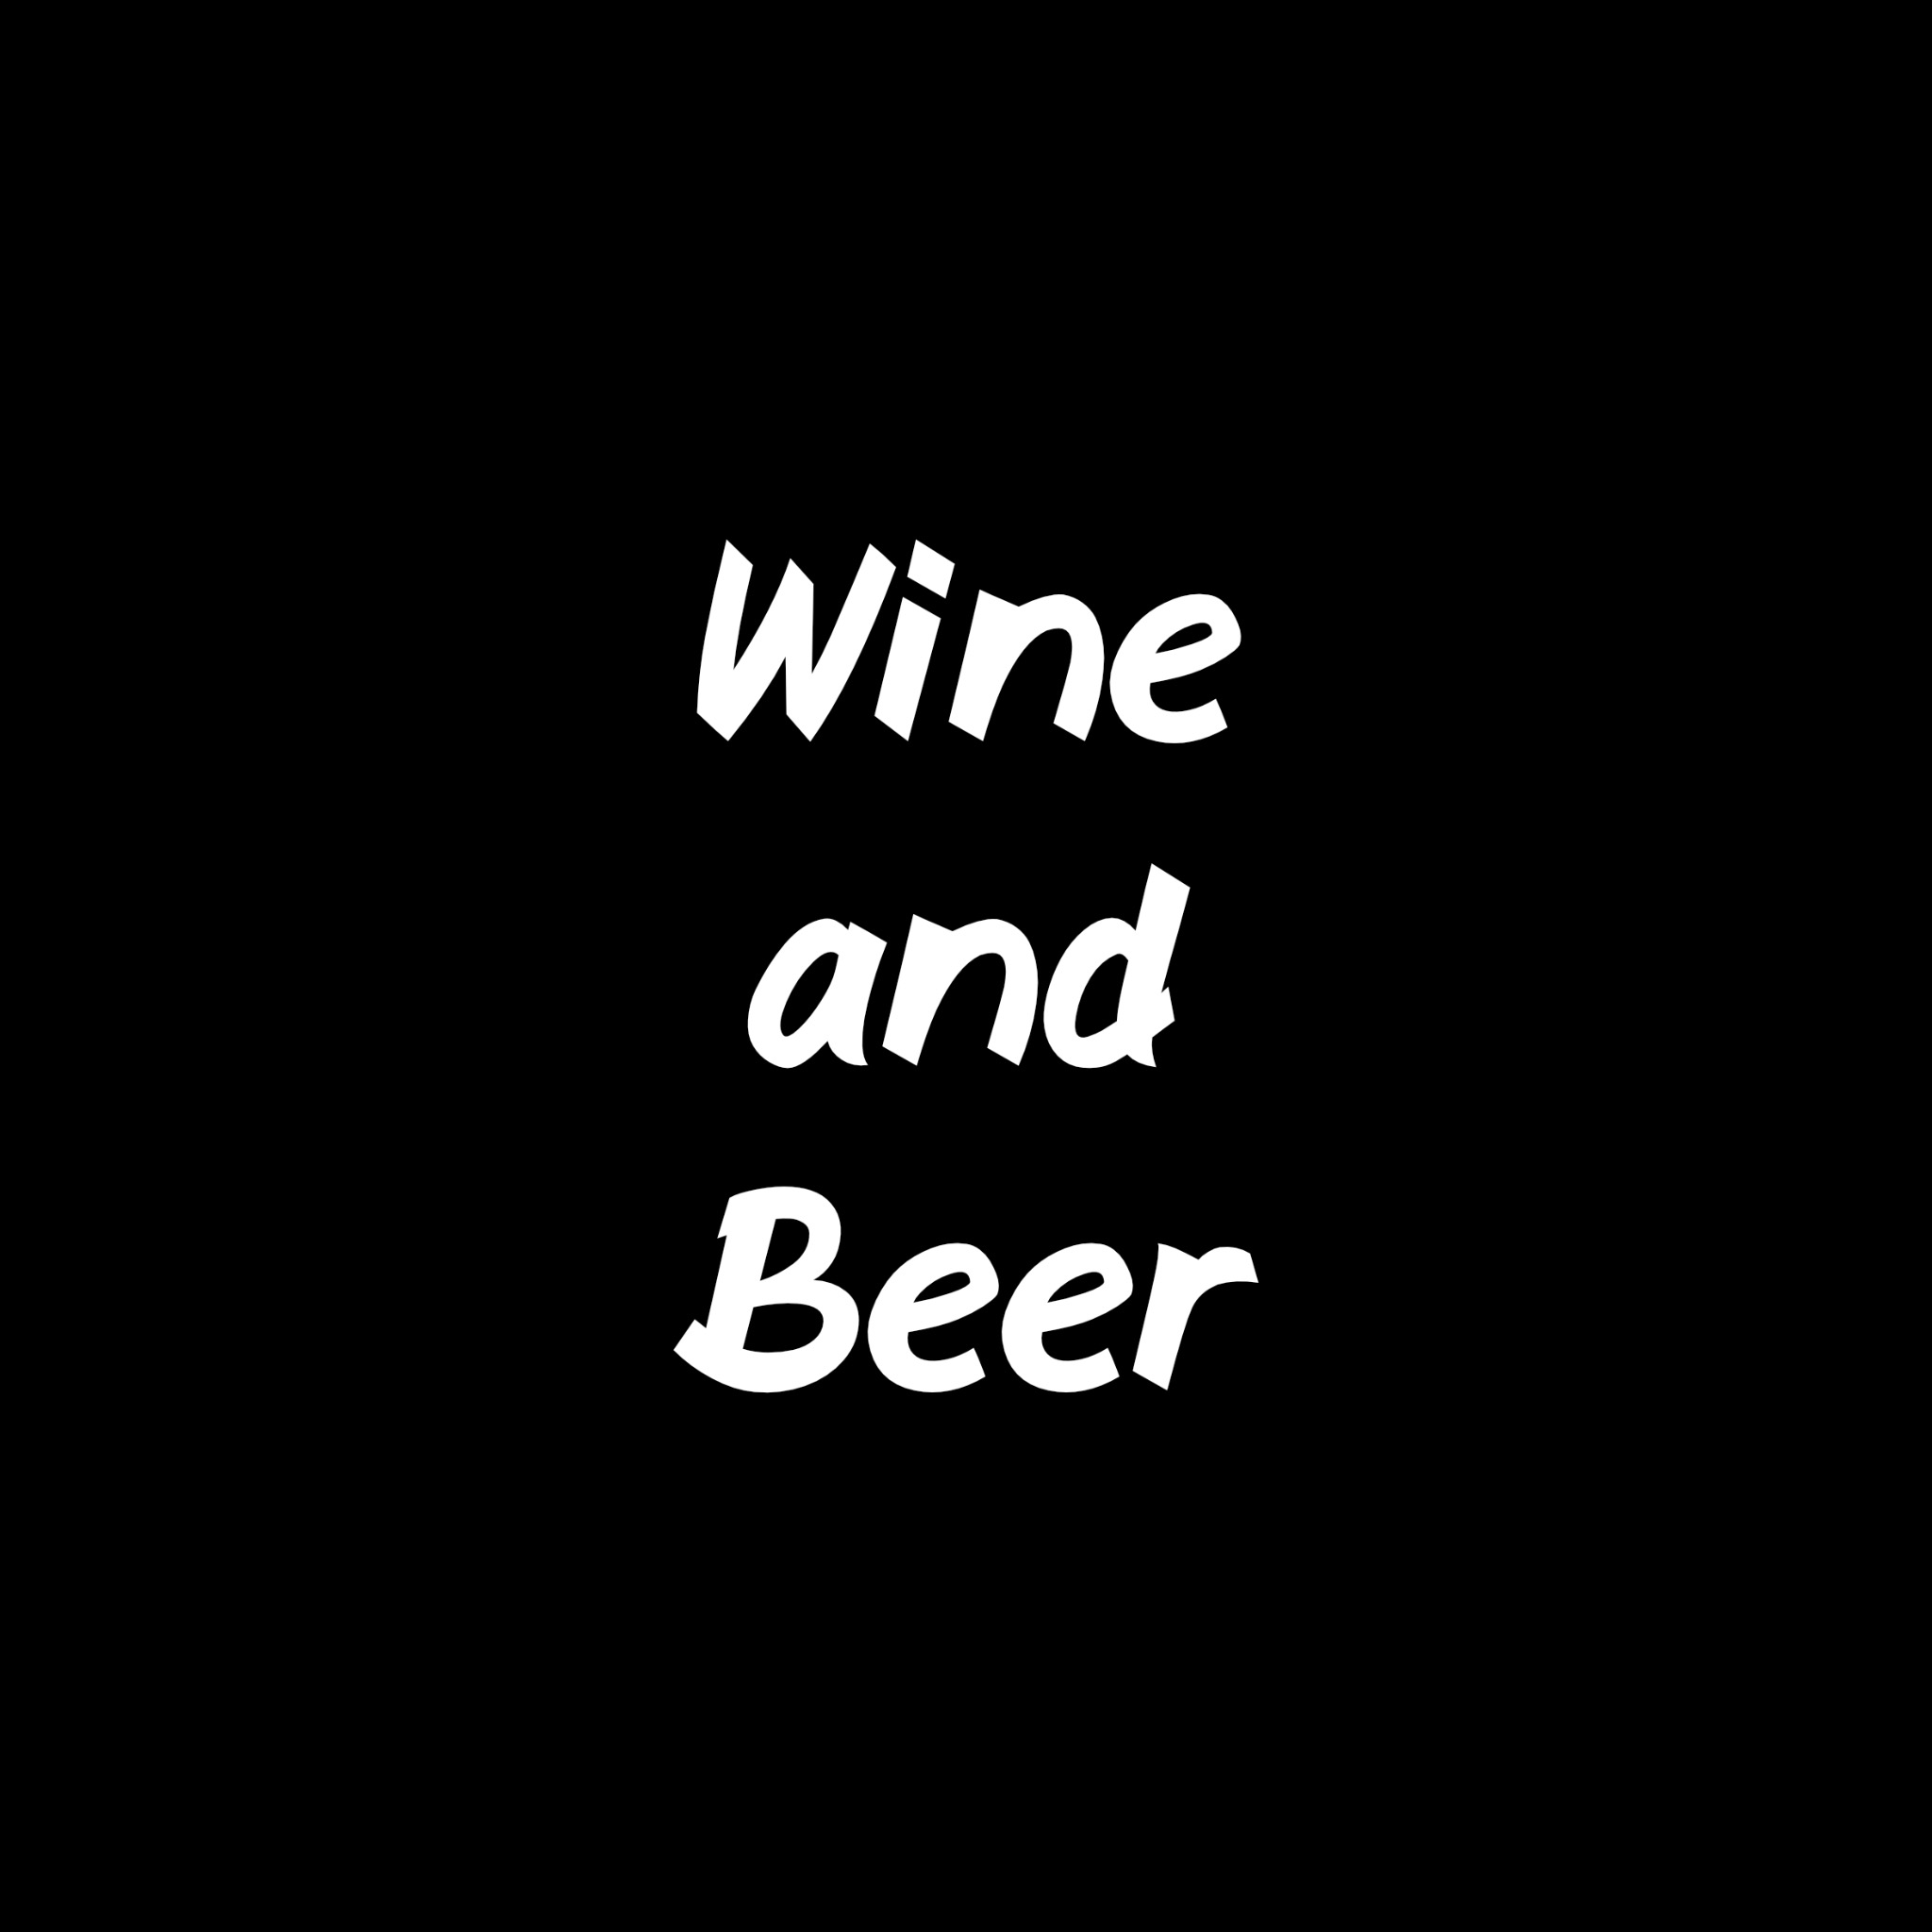 6 Wines and Beers